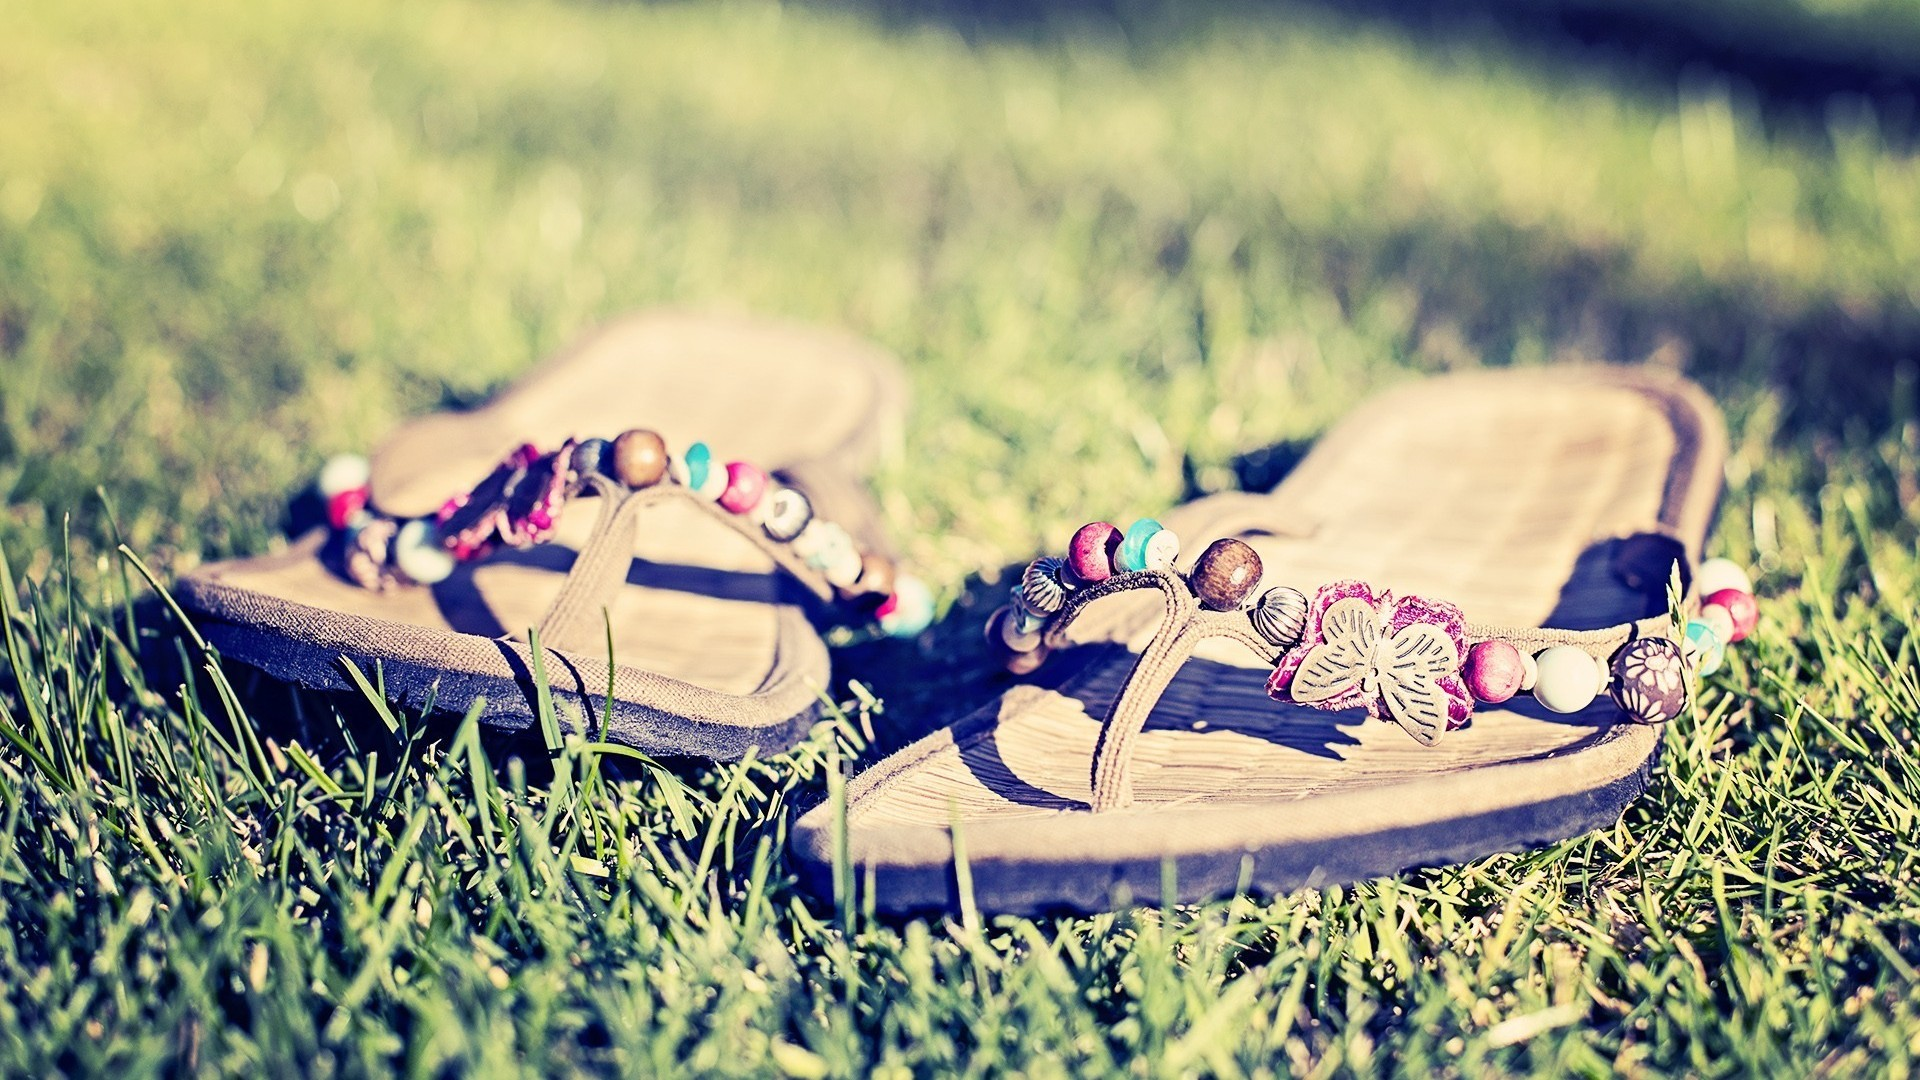 pair of flip flops in the grass wallpapers55com   Best Wallpapers 1920x1080